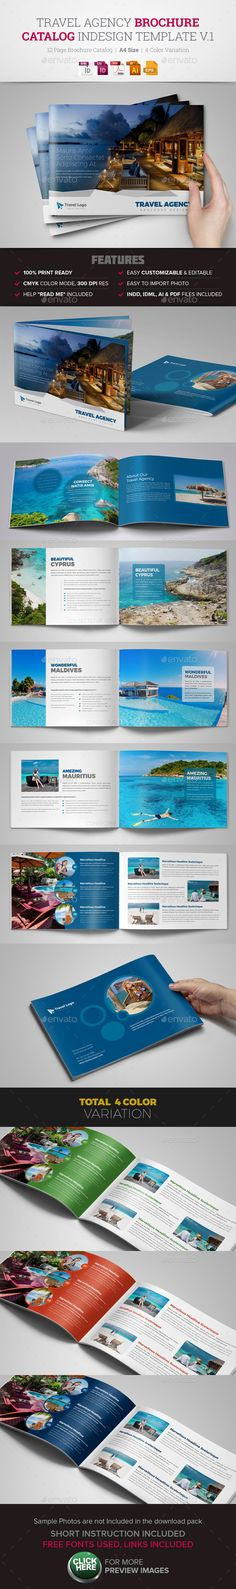 Travel Agency Brochure Catalog InDesign Template  - Corporate Brochures